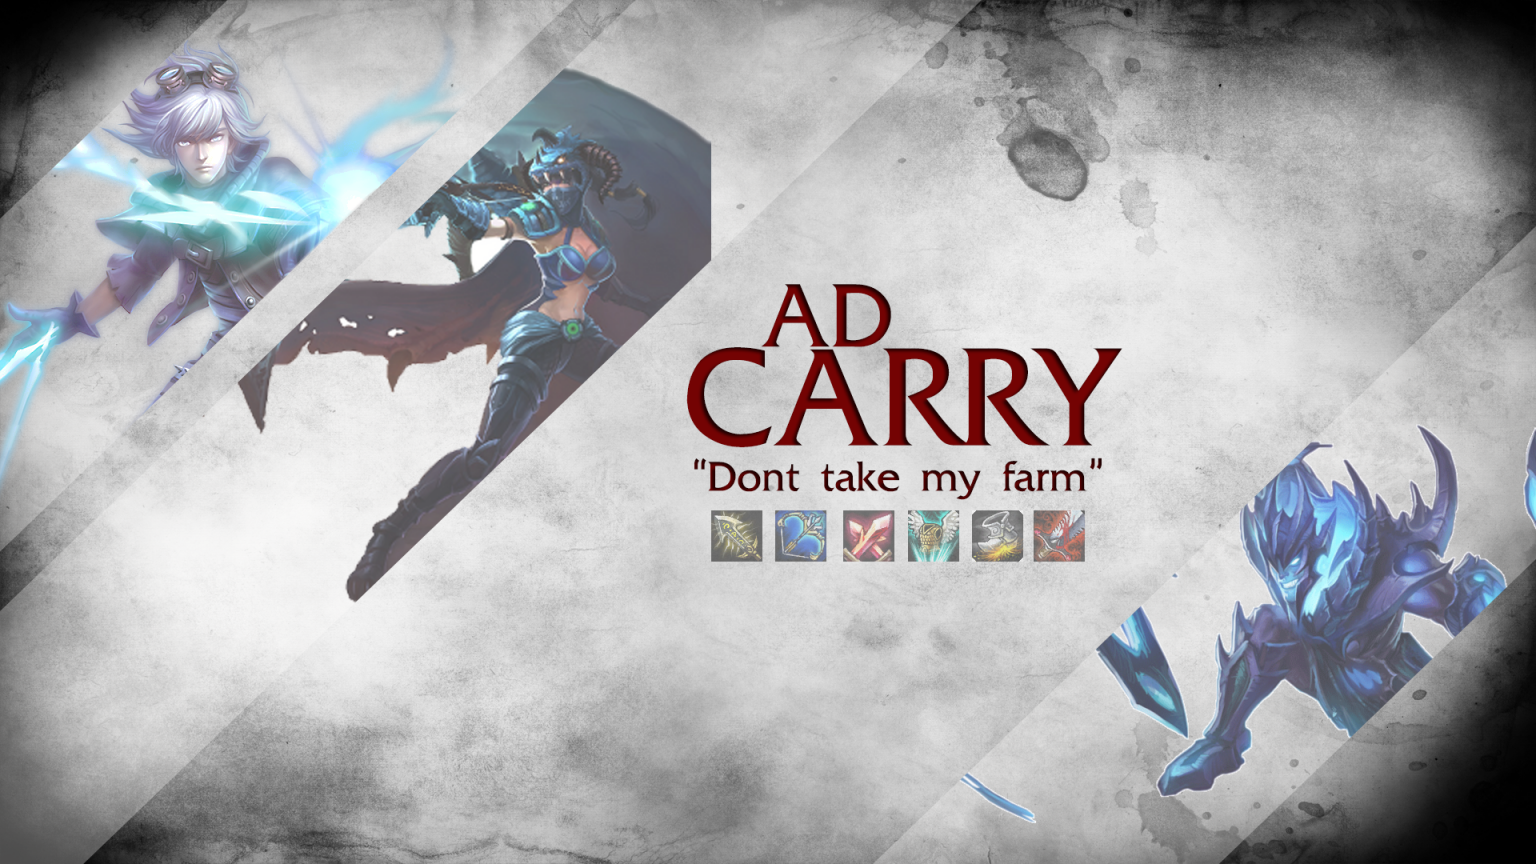 Free Download Adc Wallpaper League Of Legends 1920x1080 For Your